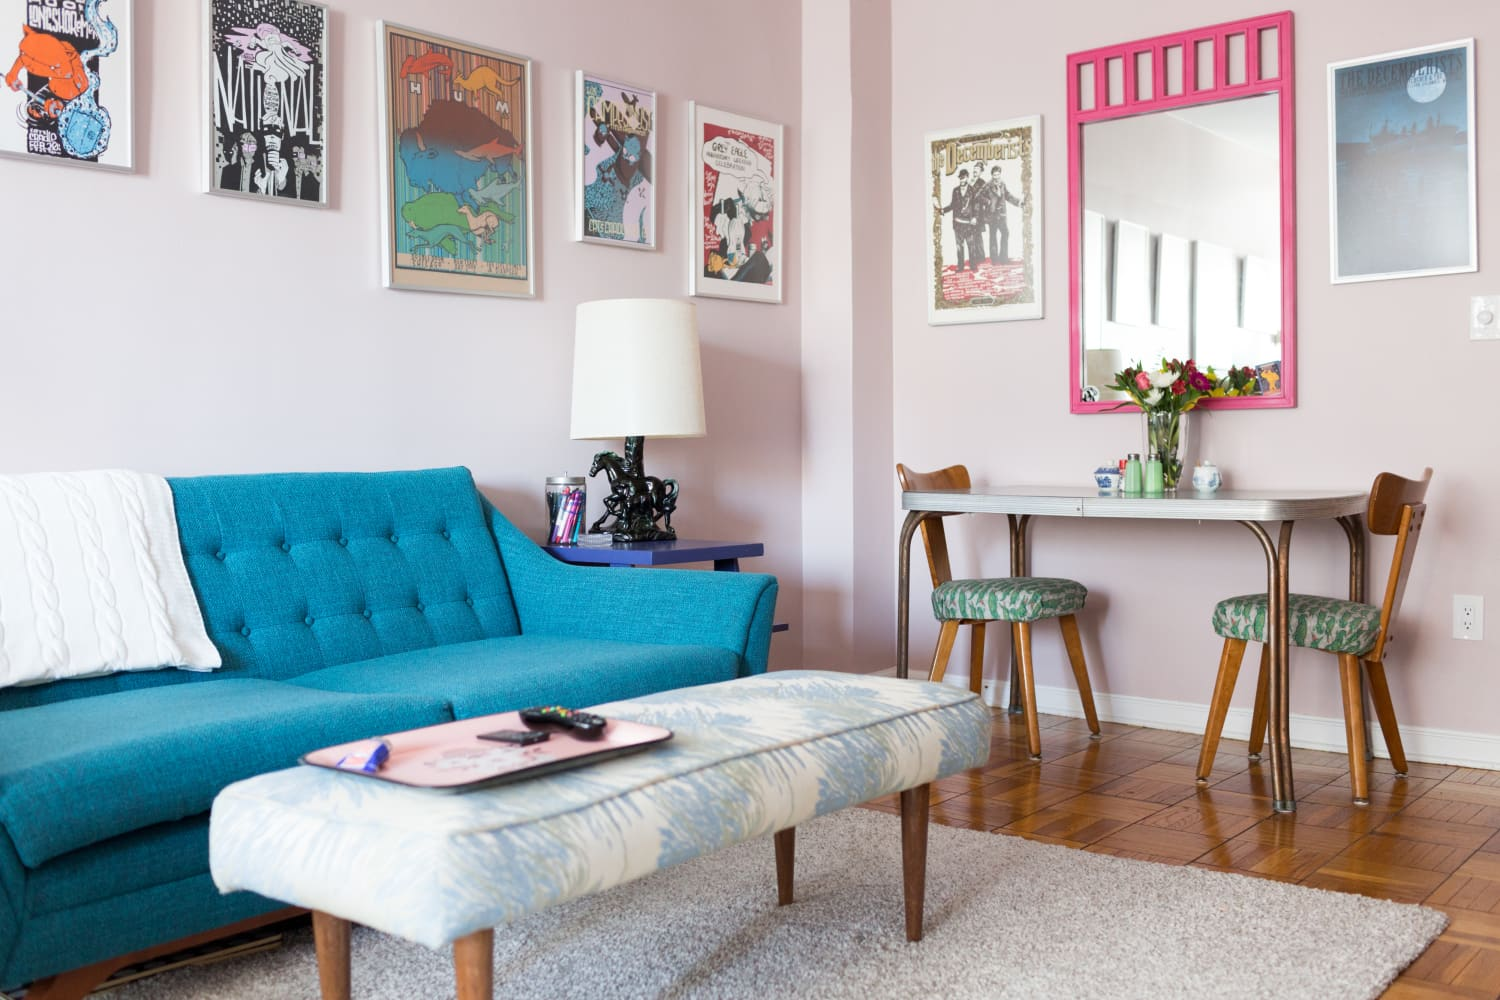 21 (Basically) Free Makeovers to Do at Home With Stuff You Already Have